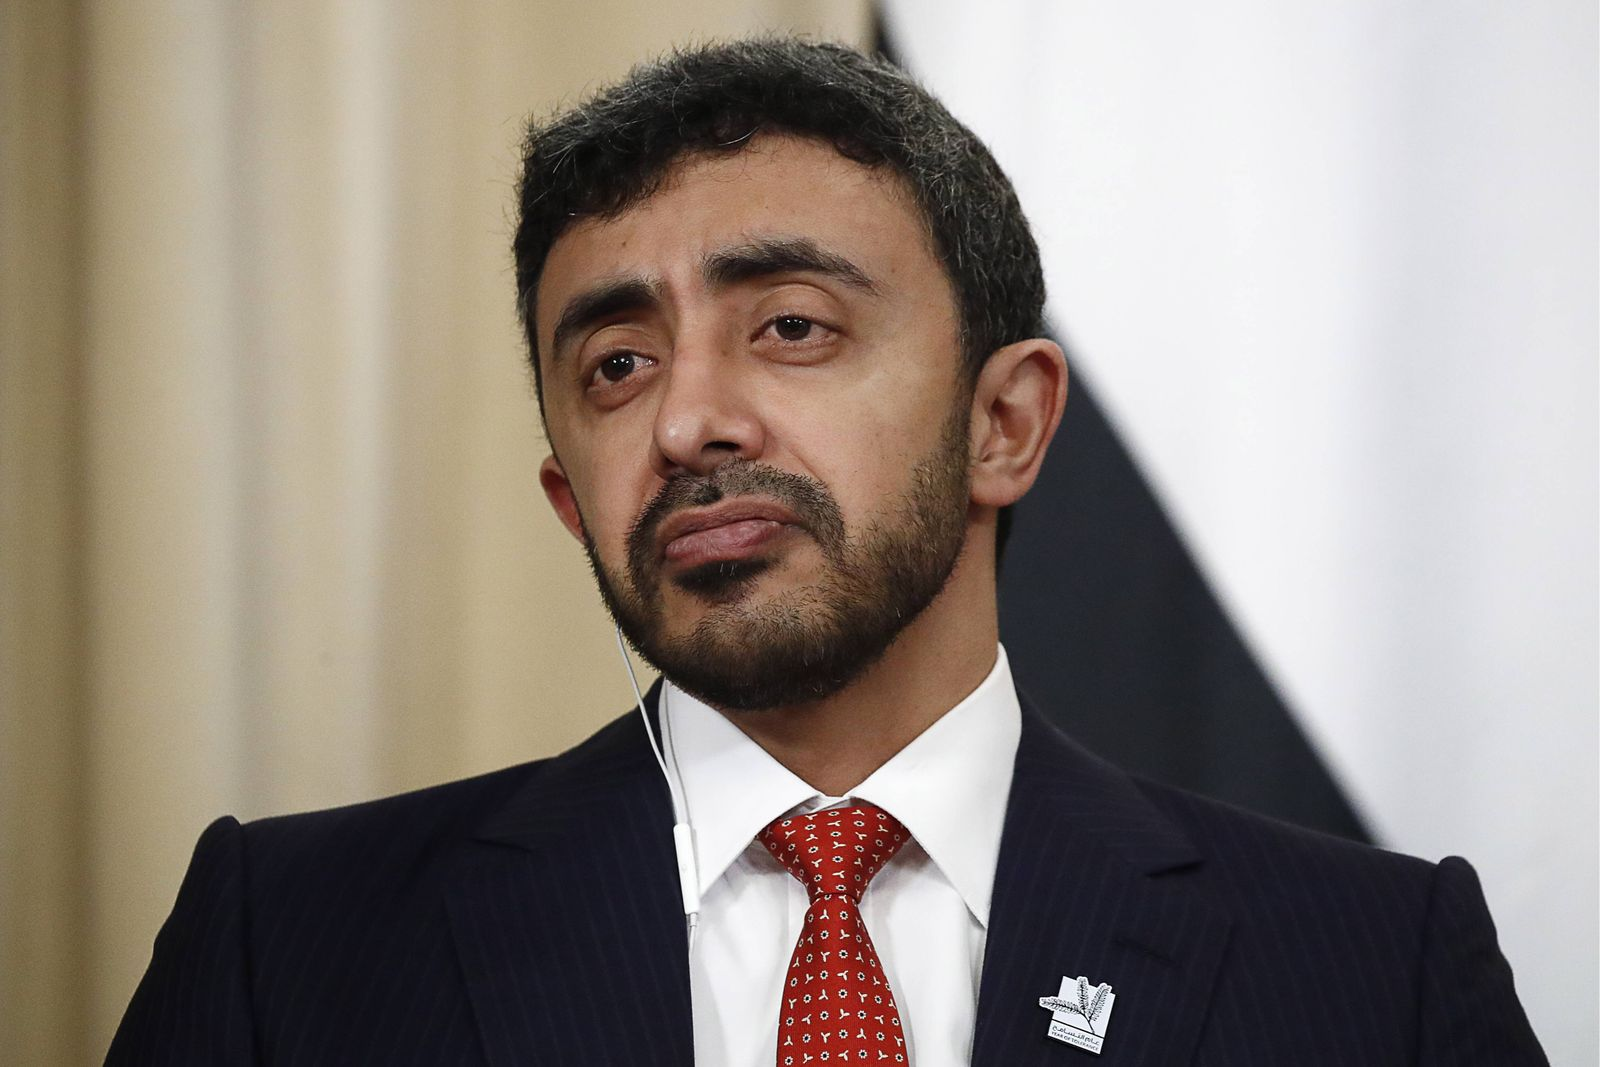 MOSCOW RUSSIA JUNE 26 2019 The United Arab Emirates Minister of Foreign Affairs and Internatio